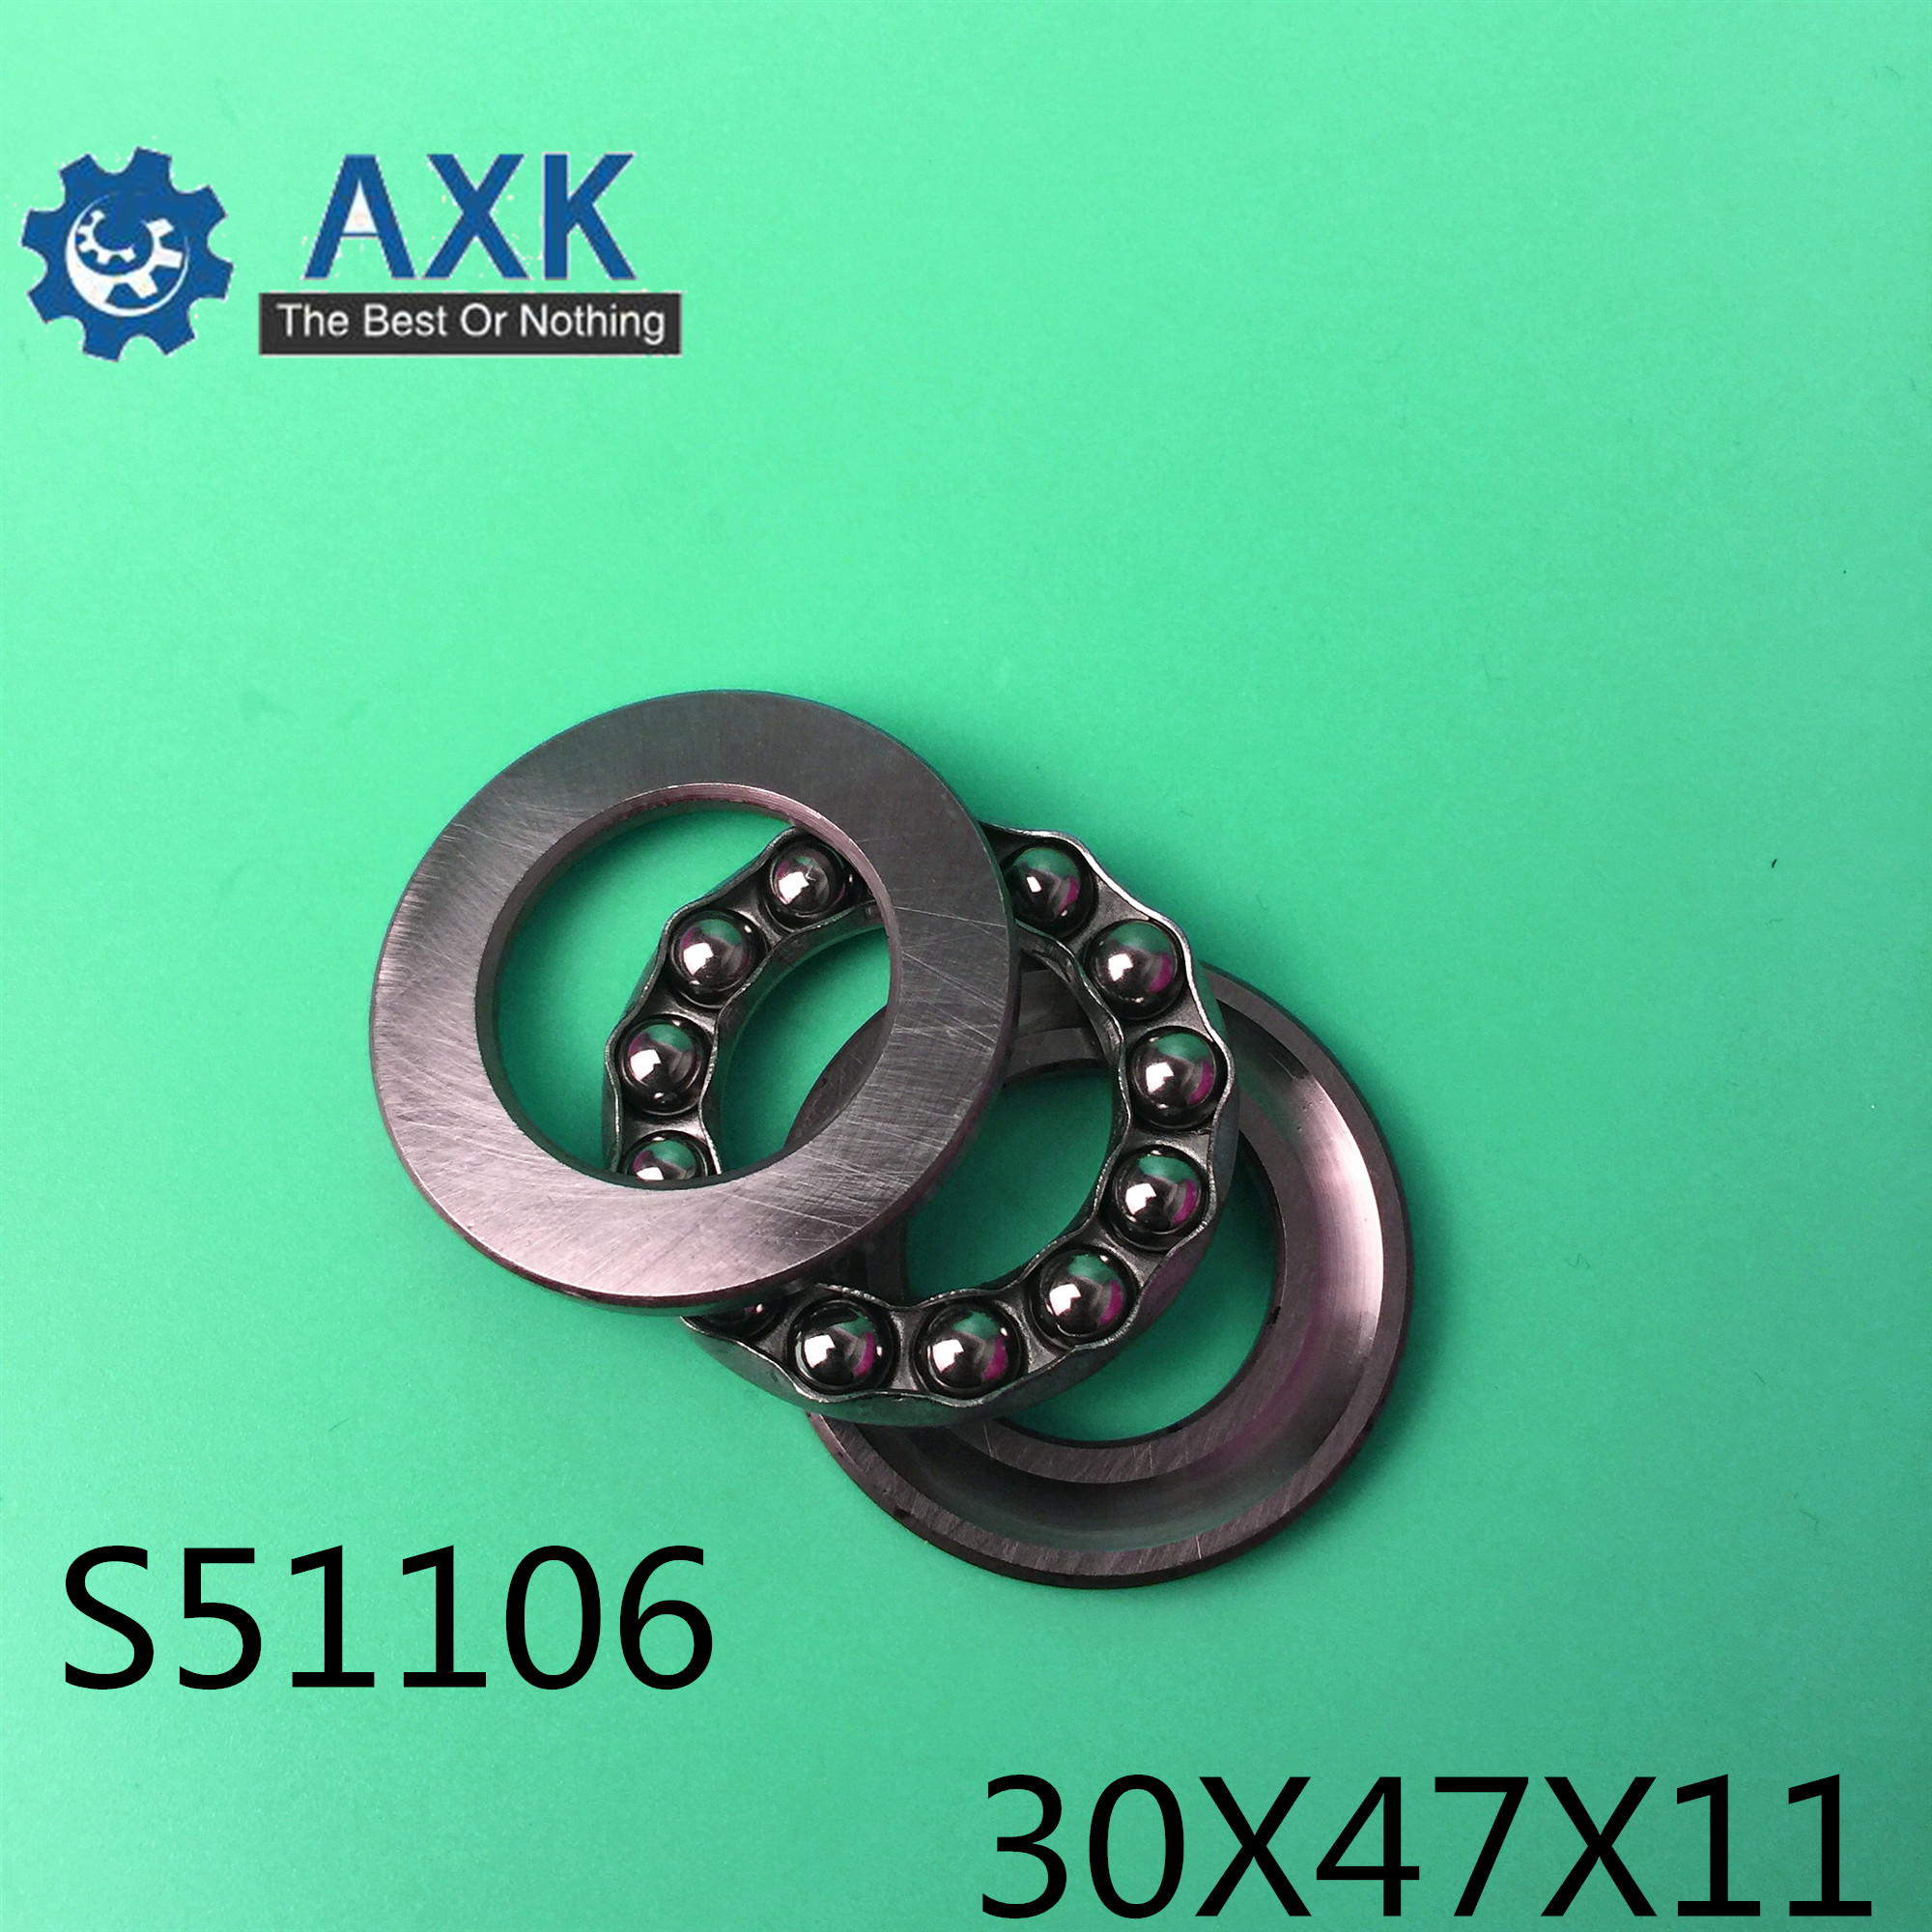 S51106 Bearing 30*47*11 mm ( 2PCS ) ABEC-1 Stainless Steel Thrust S 51106 Ball BearingsS51106 Bearing 30*47*11 mm ( 2PCS ) ABEC-1 Stainless Steel Thrust S 51106 Ball Bearings